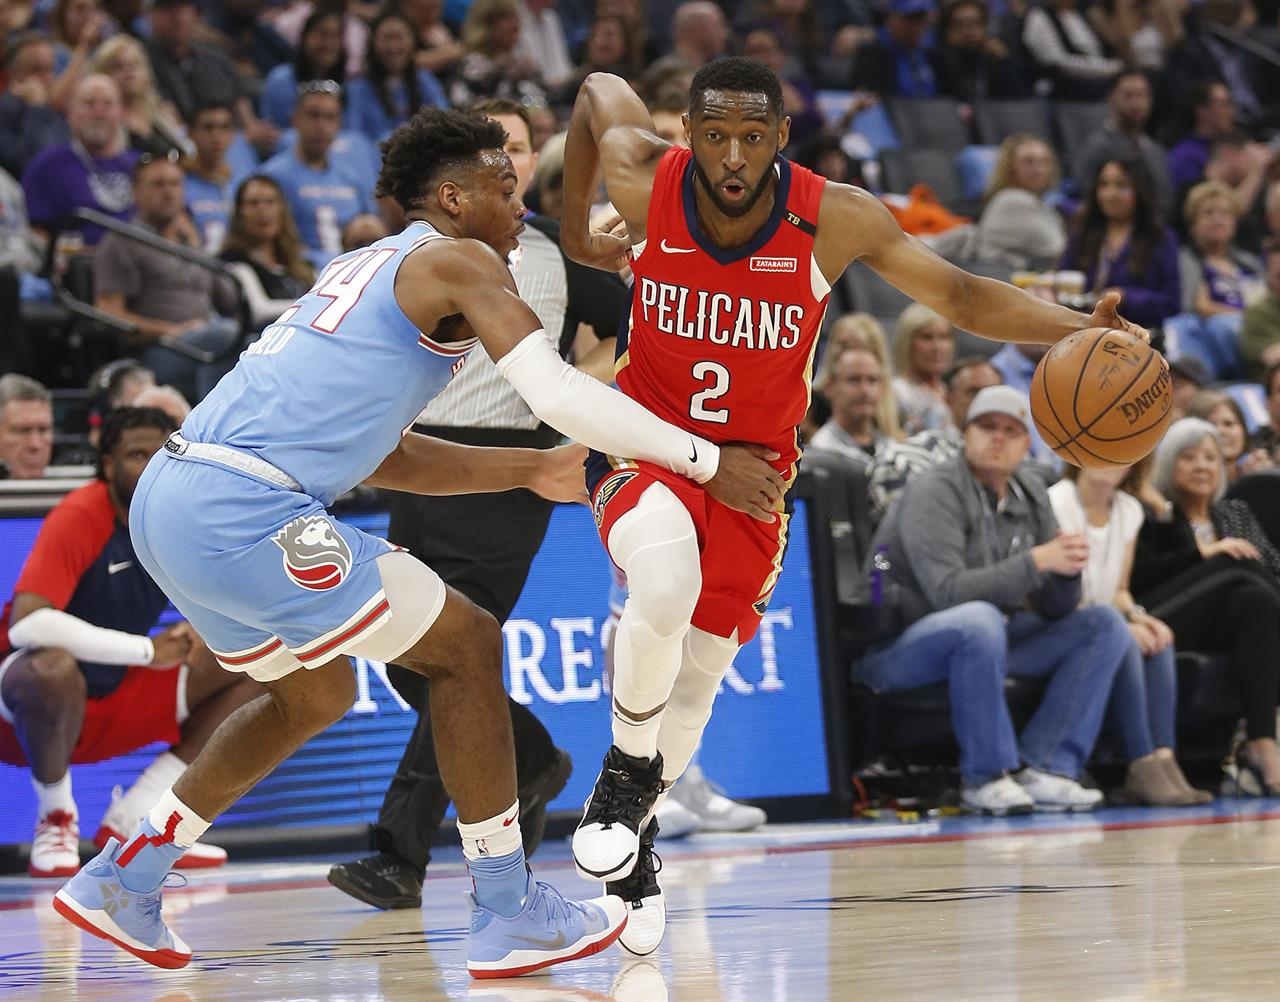 Clark, Payton help Pelicans rally past Kings 133-129 | AM